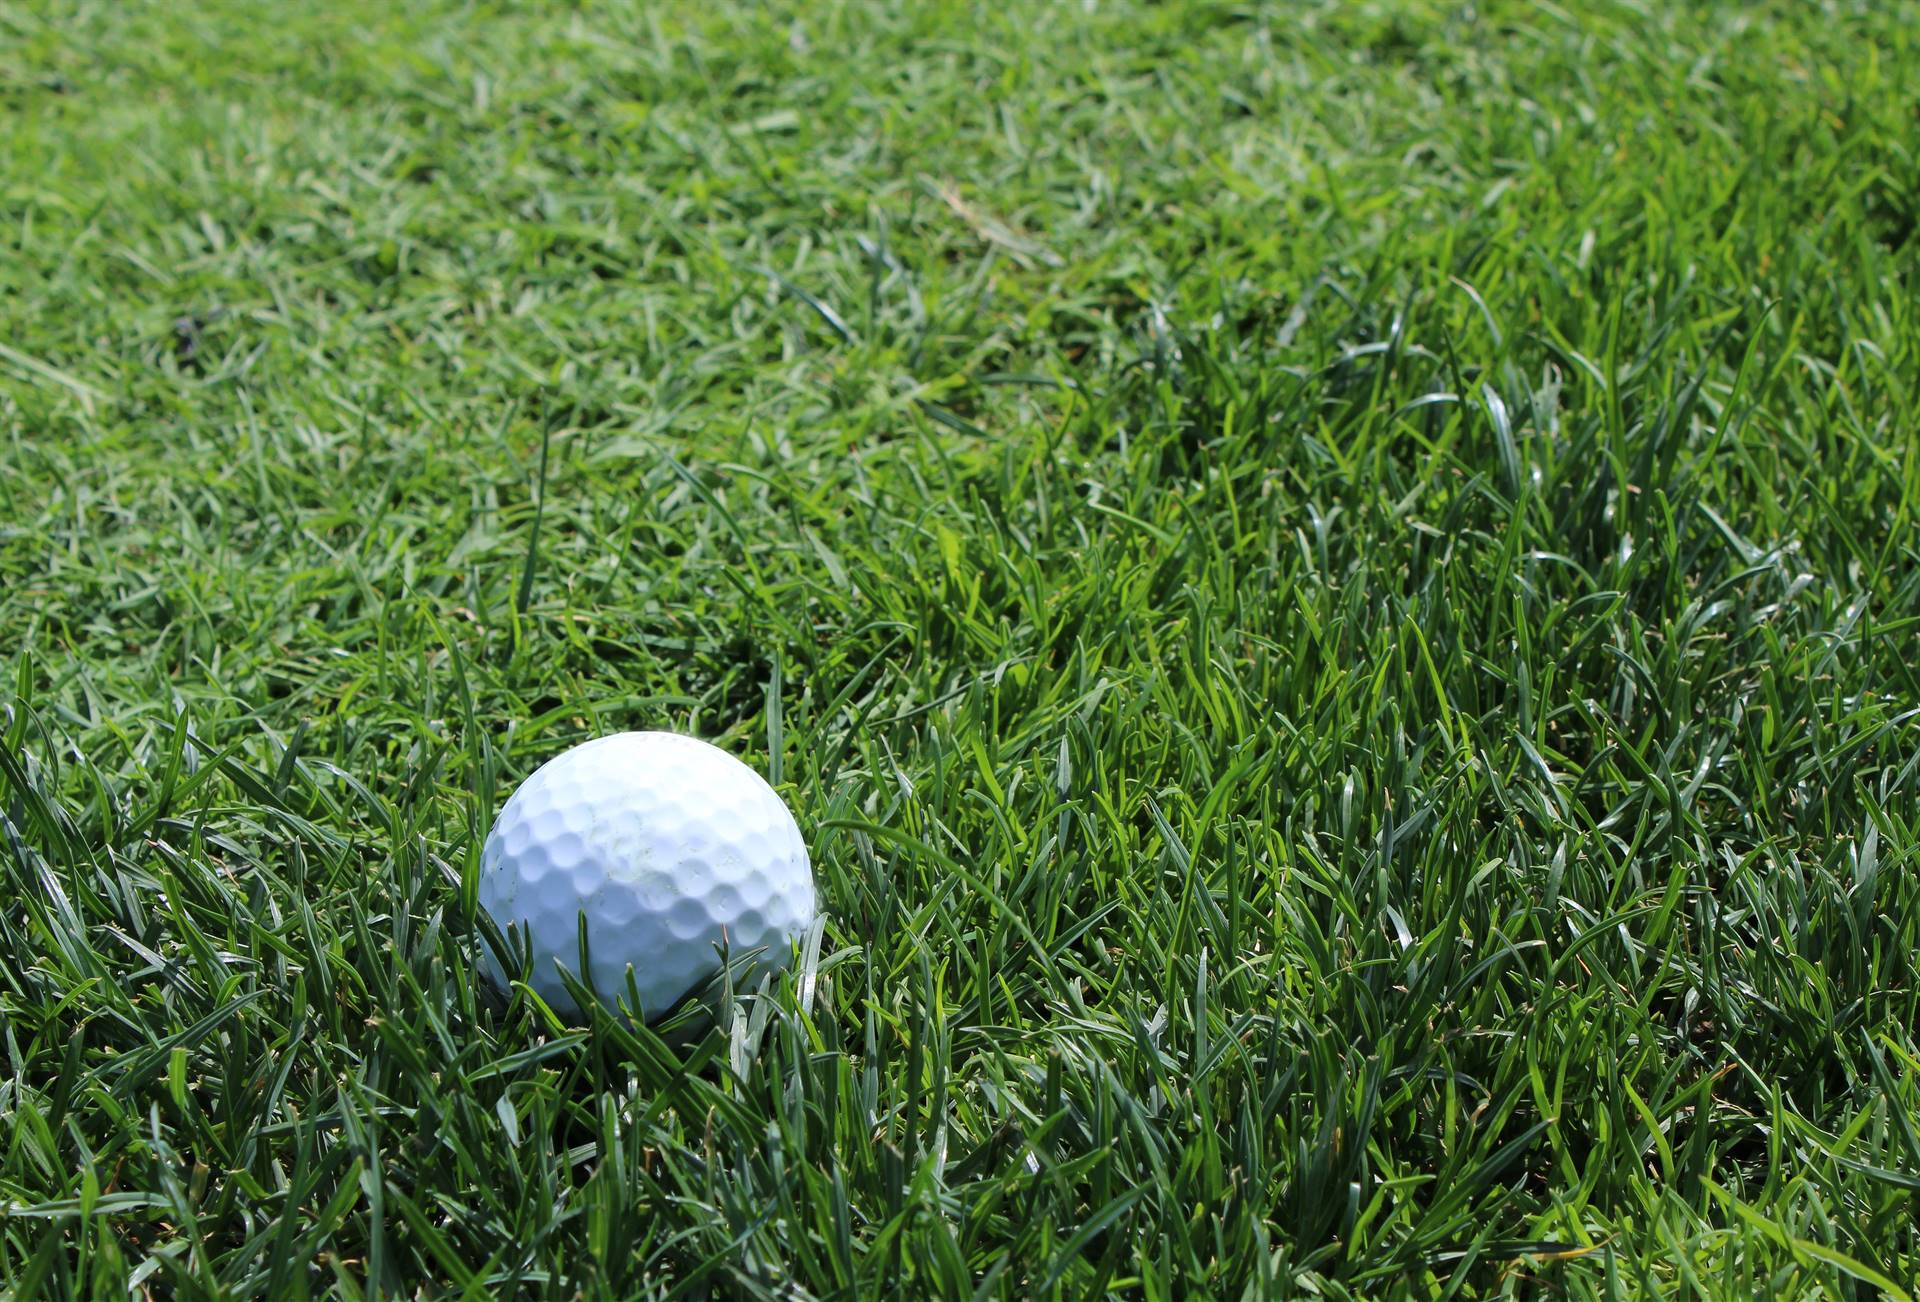 Golf-ball-in-grass